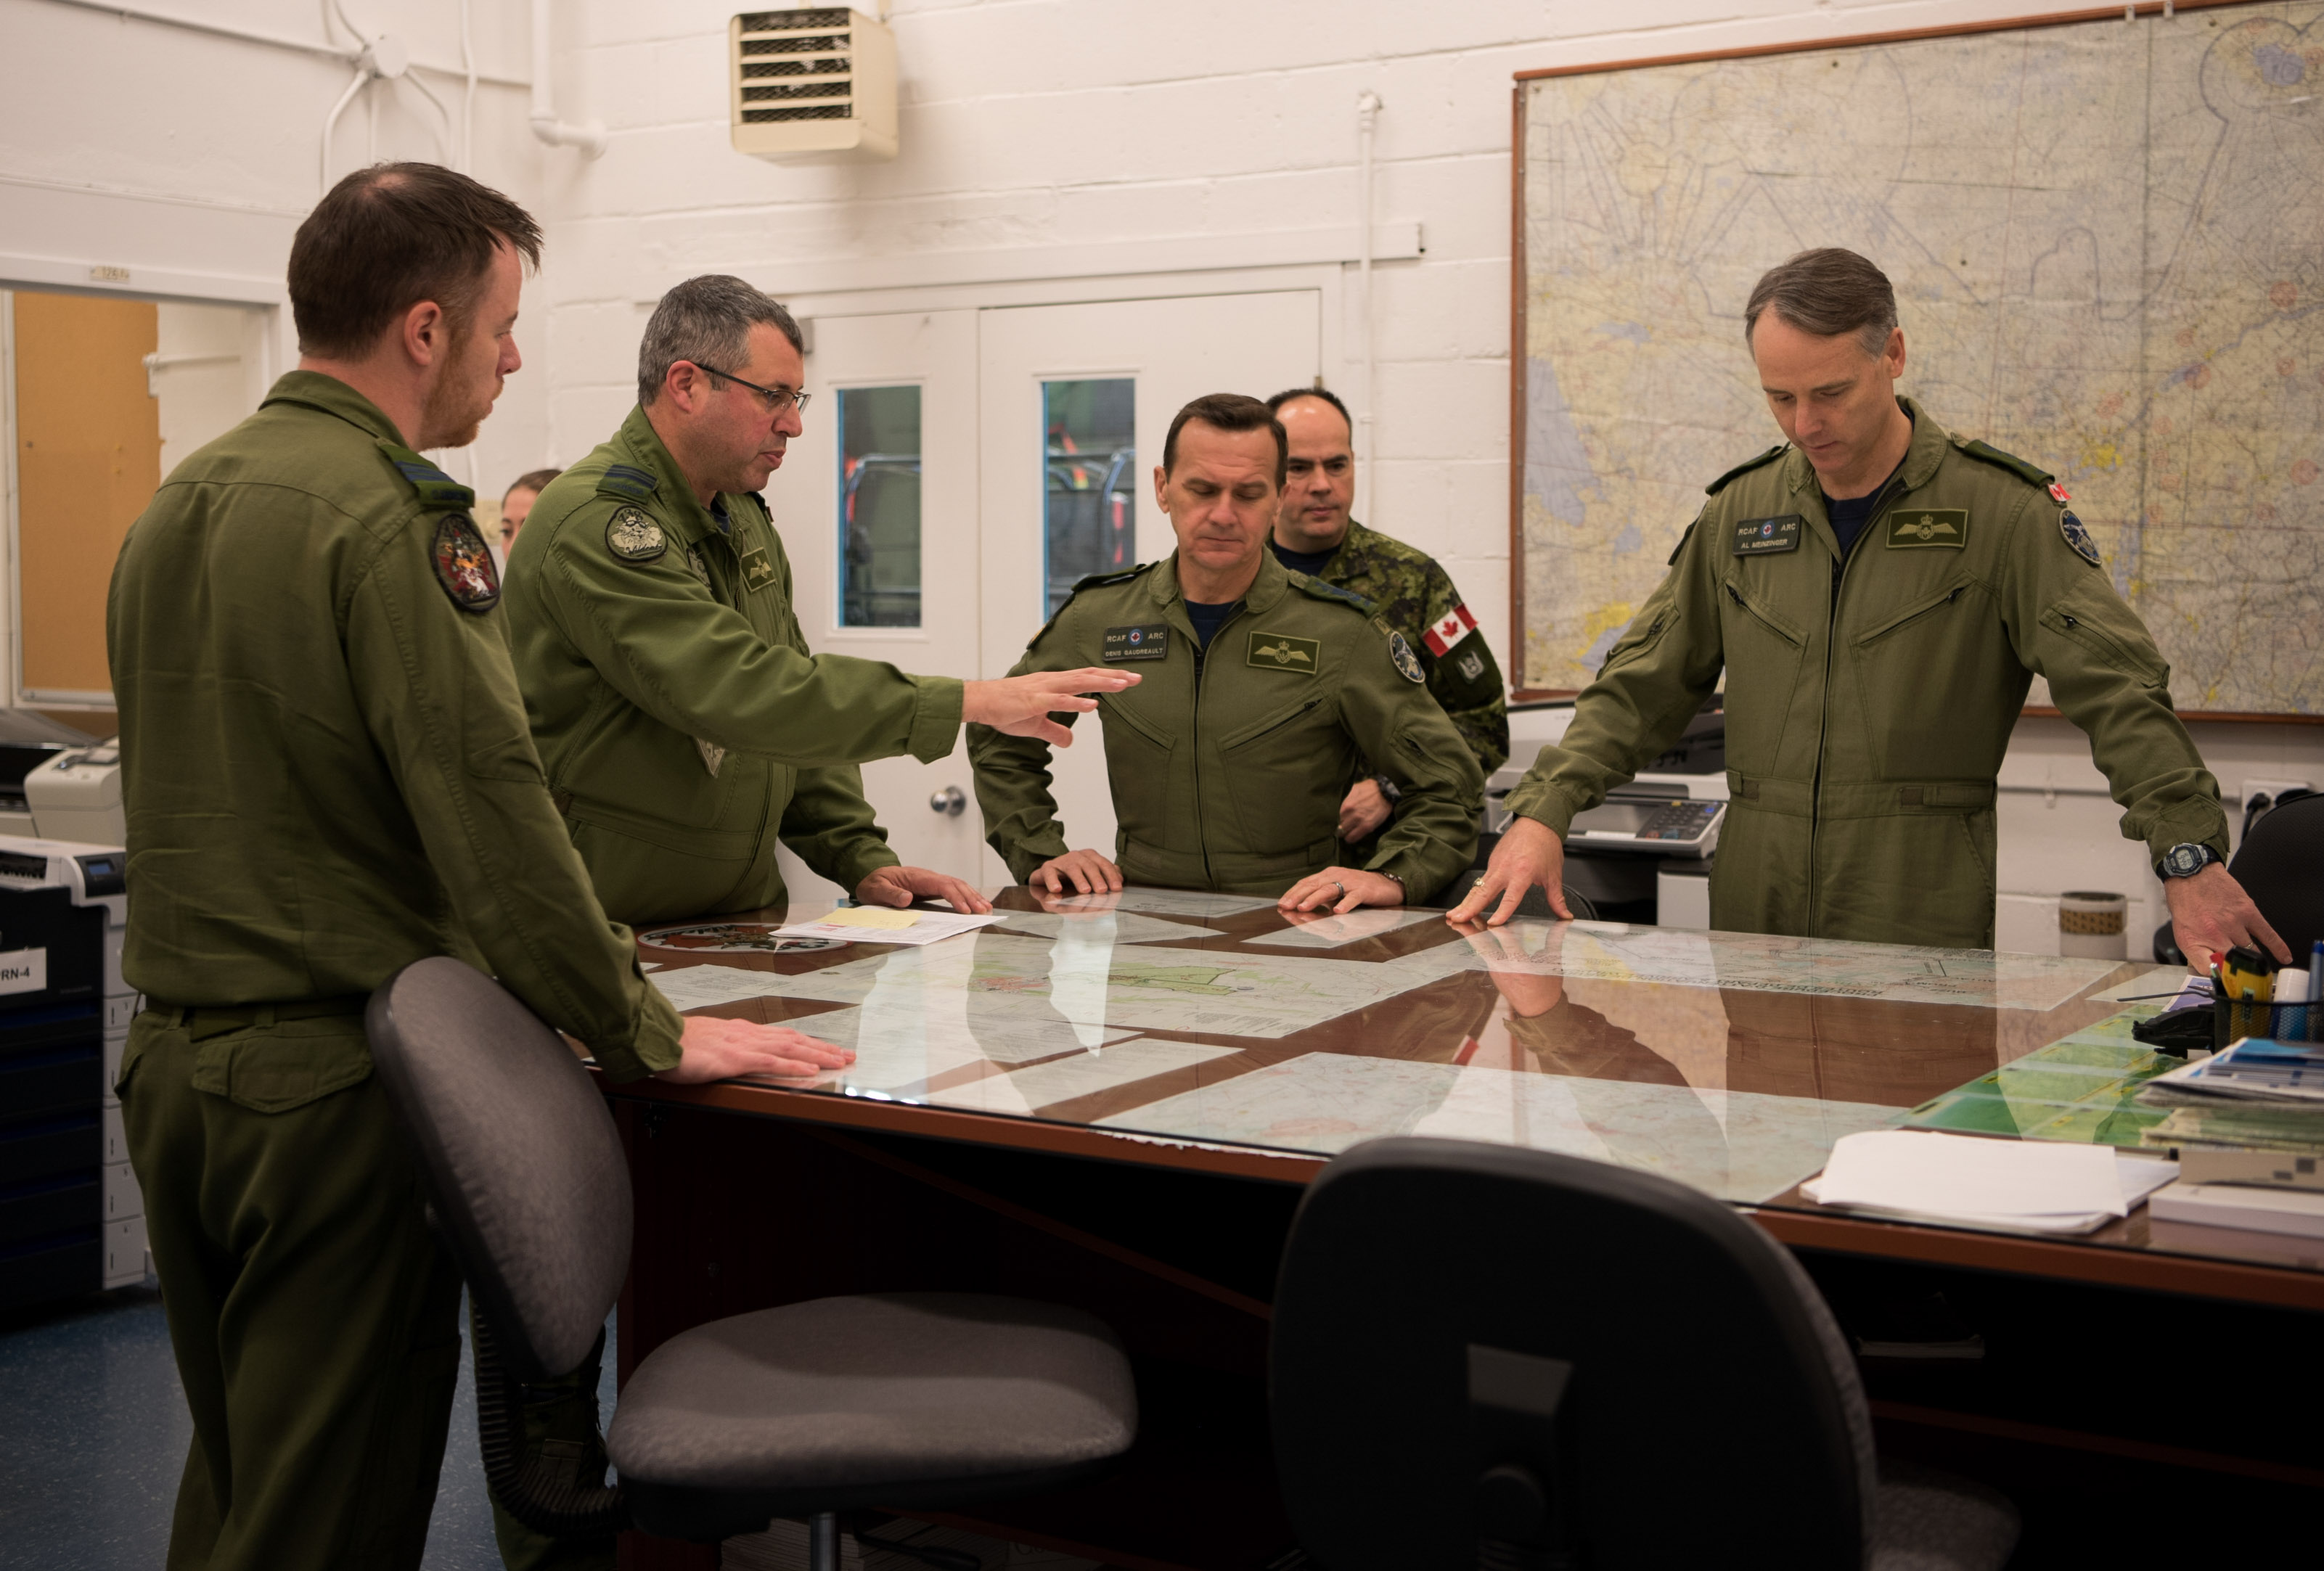 Five men in military uniforms talk while standing around a table covered with a sheet of glass, under which are documents.